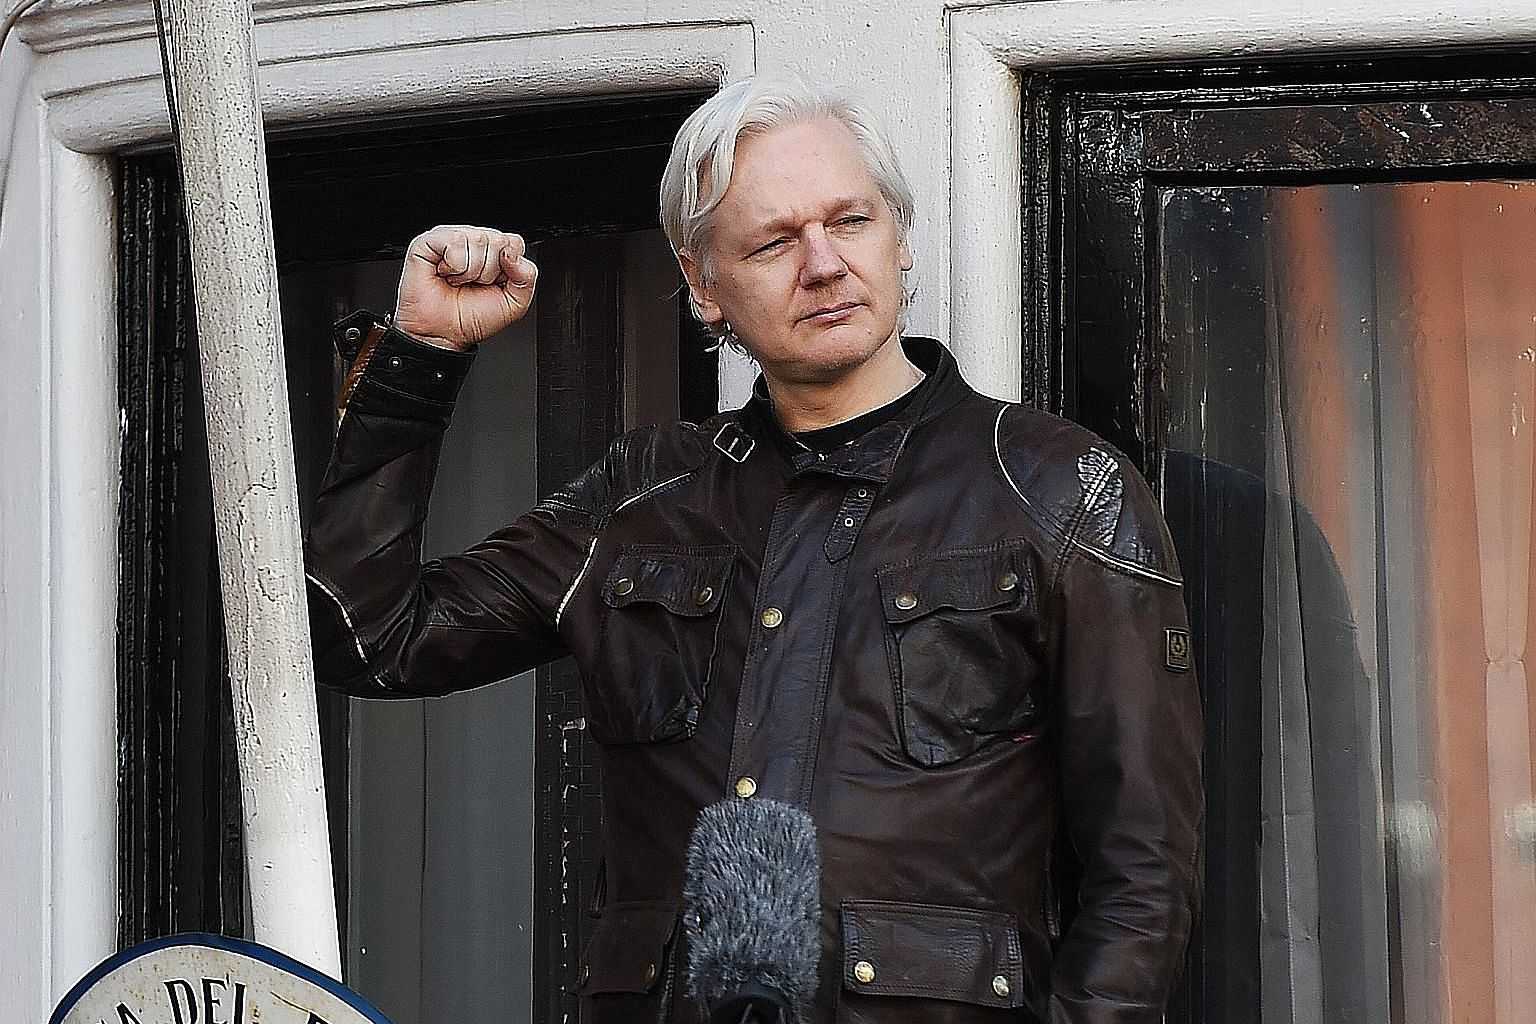 WikiLeaks founder Julian Assange speaking to the media from the balcony of Ecuador's London embassy, where he has been holed up since 2012. British police could arrest him for breaching earlier bail conditions if he leaves the building.